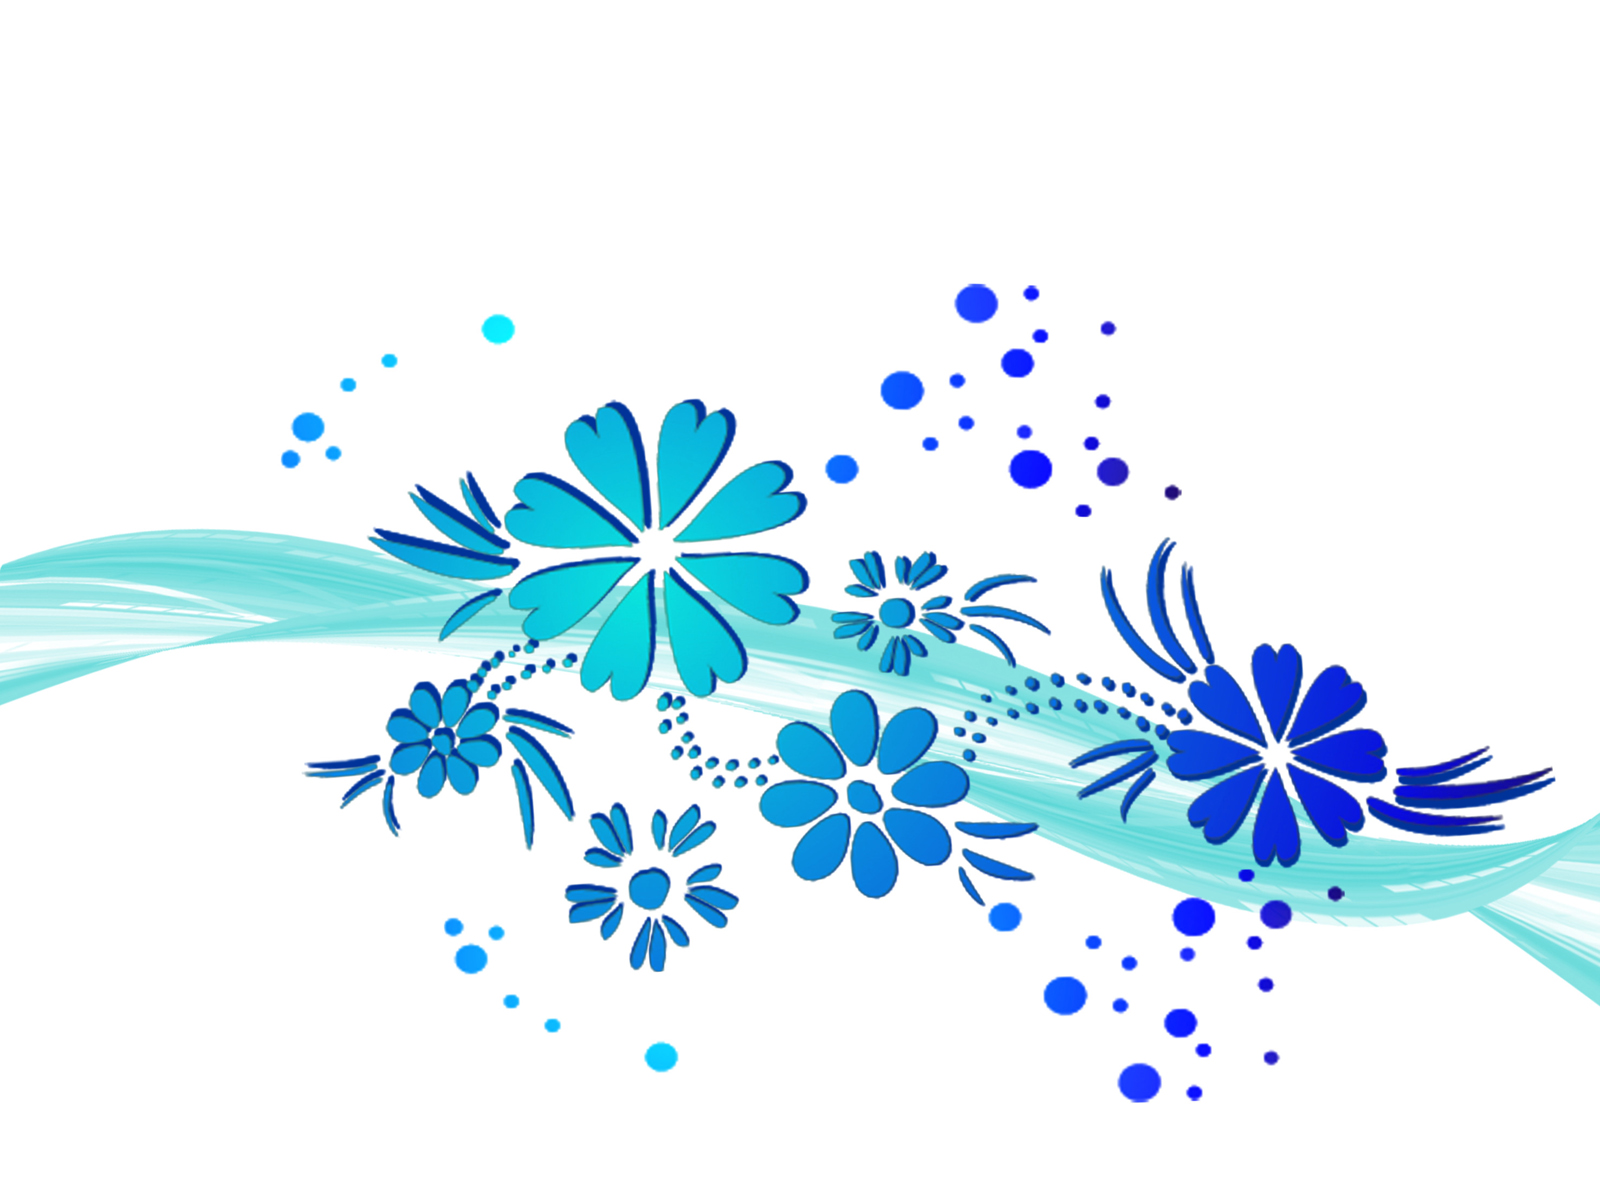 Flowers Wawe Blue Flowers Backgrounds Powerpoint Jpg